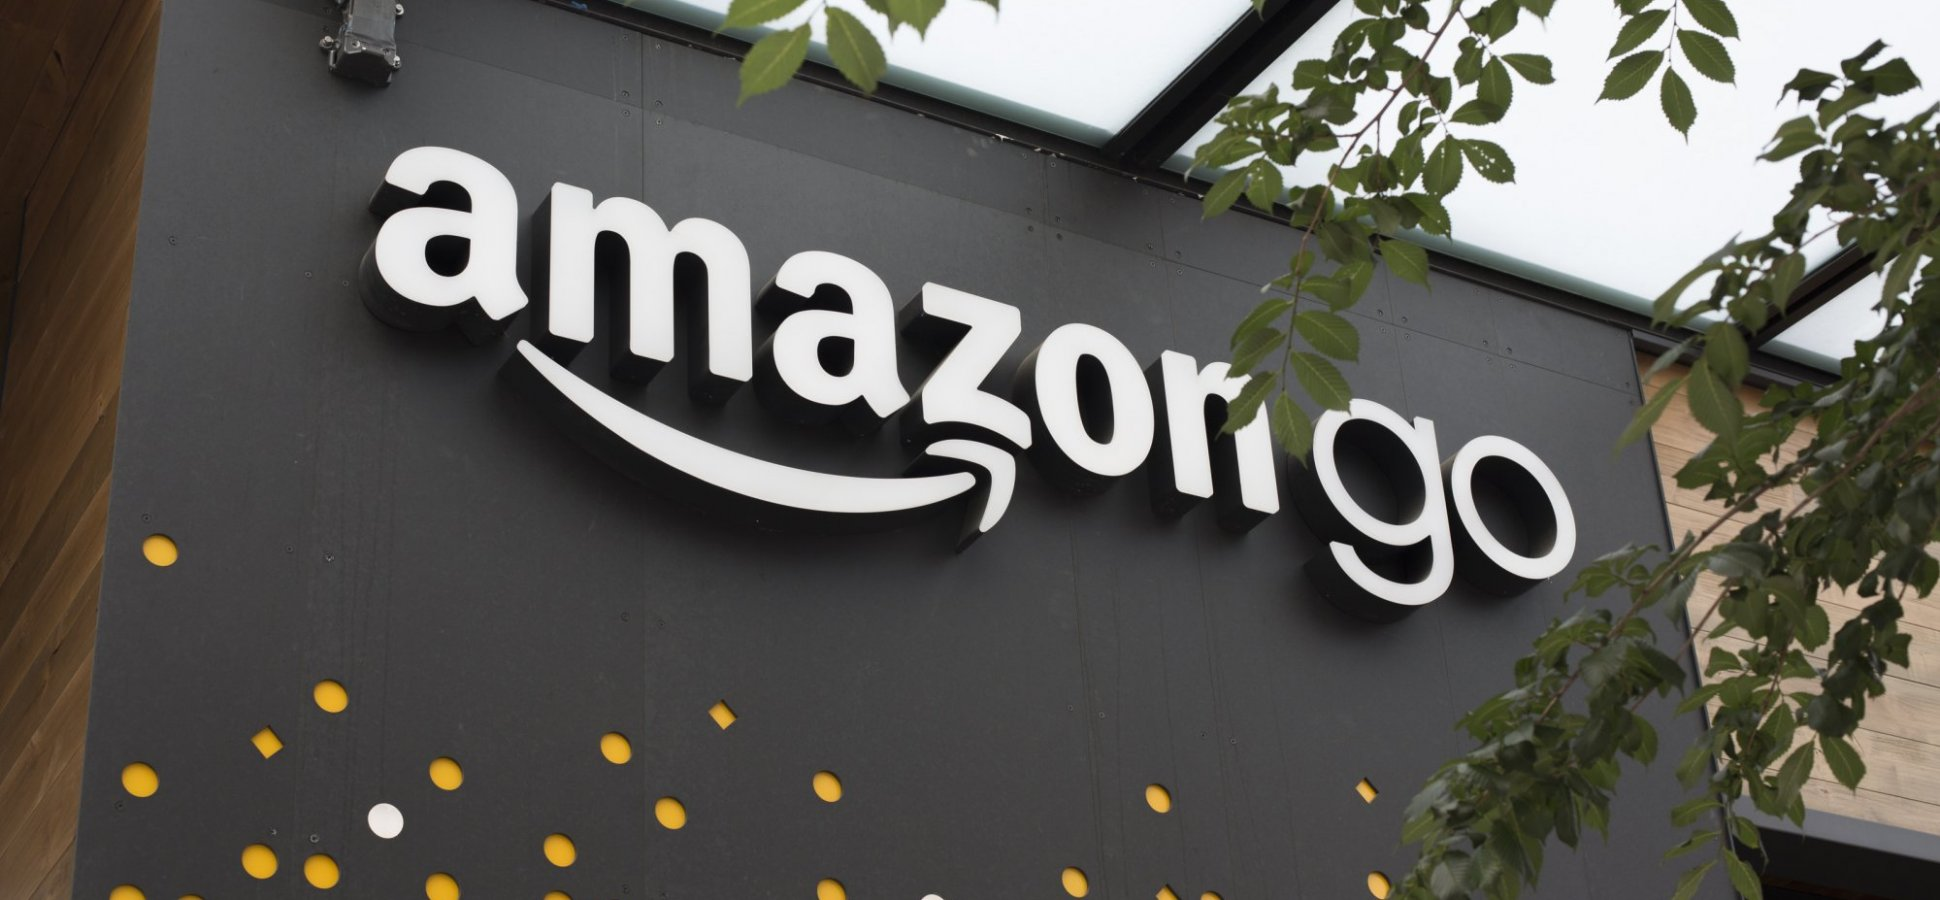 In an Unexpected Move, Amazon Just Made Its Biggest Announcement Since Acquiring Whole Foods